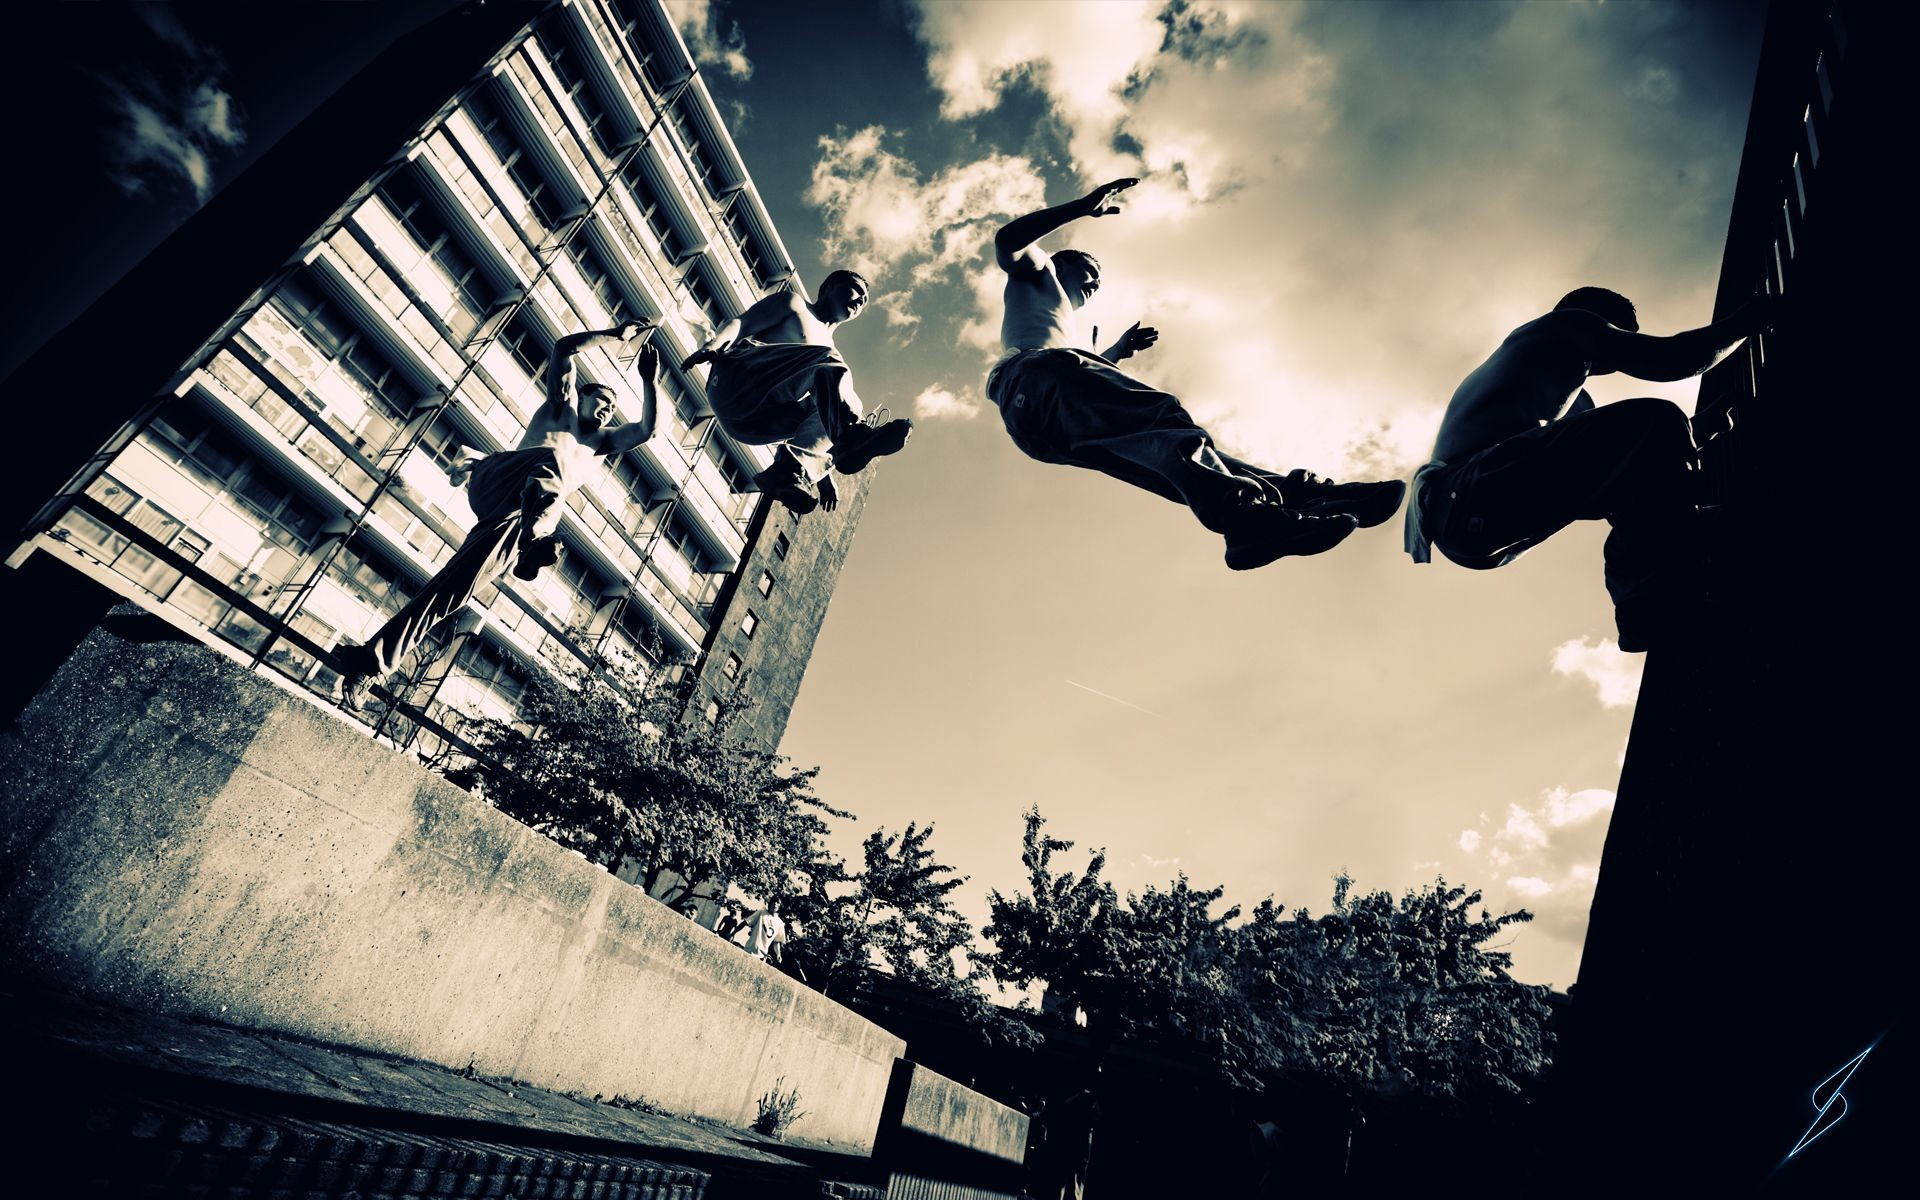 Free 3d Widescreen Wallpapers For Pc Freerunning Wallpapers 183 ①